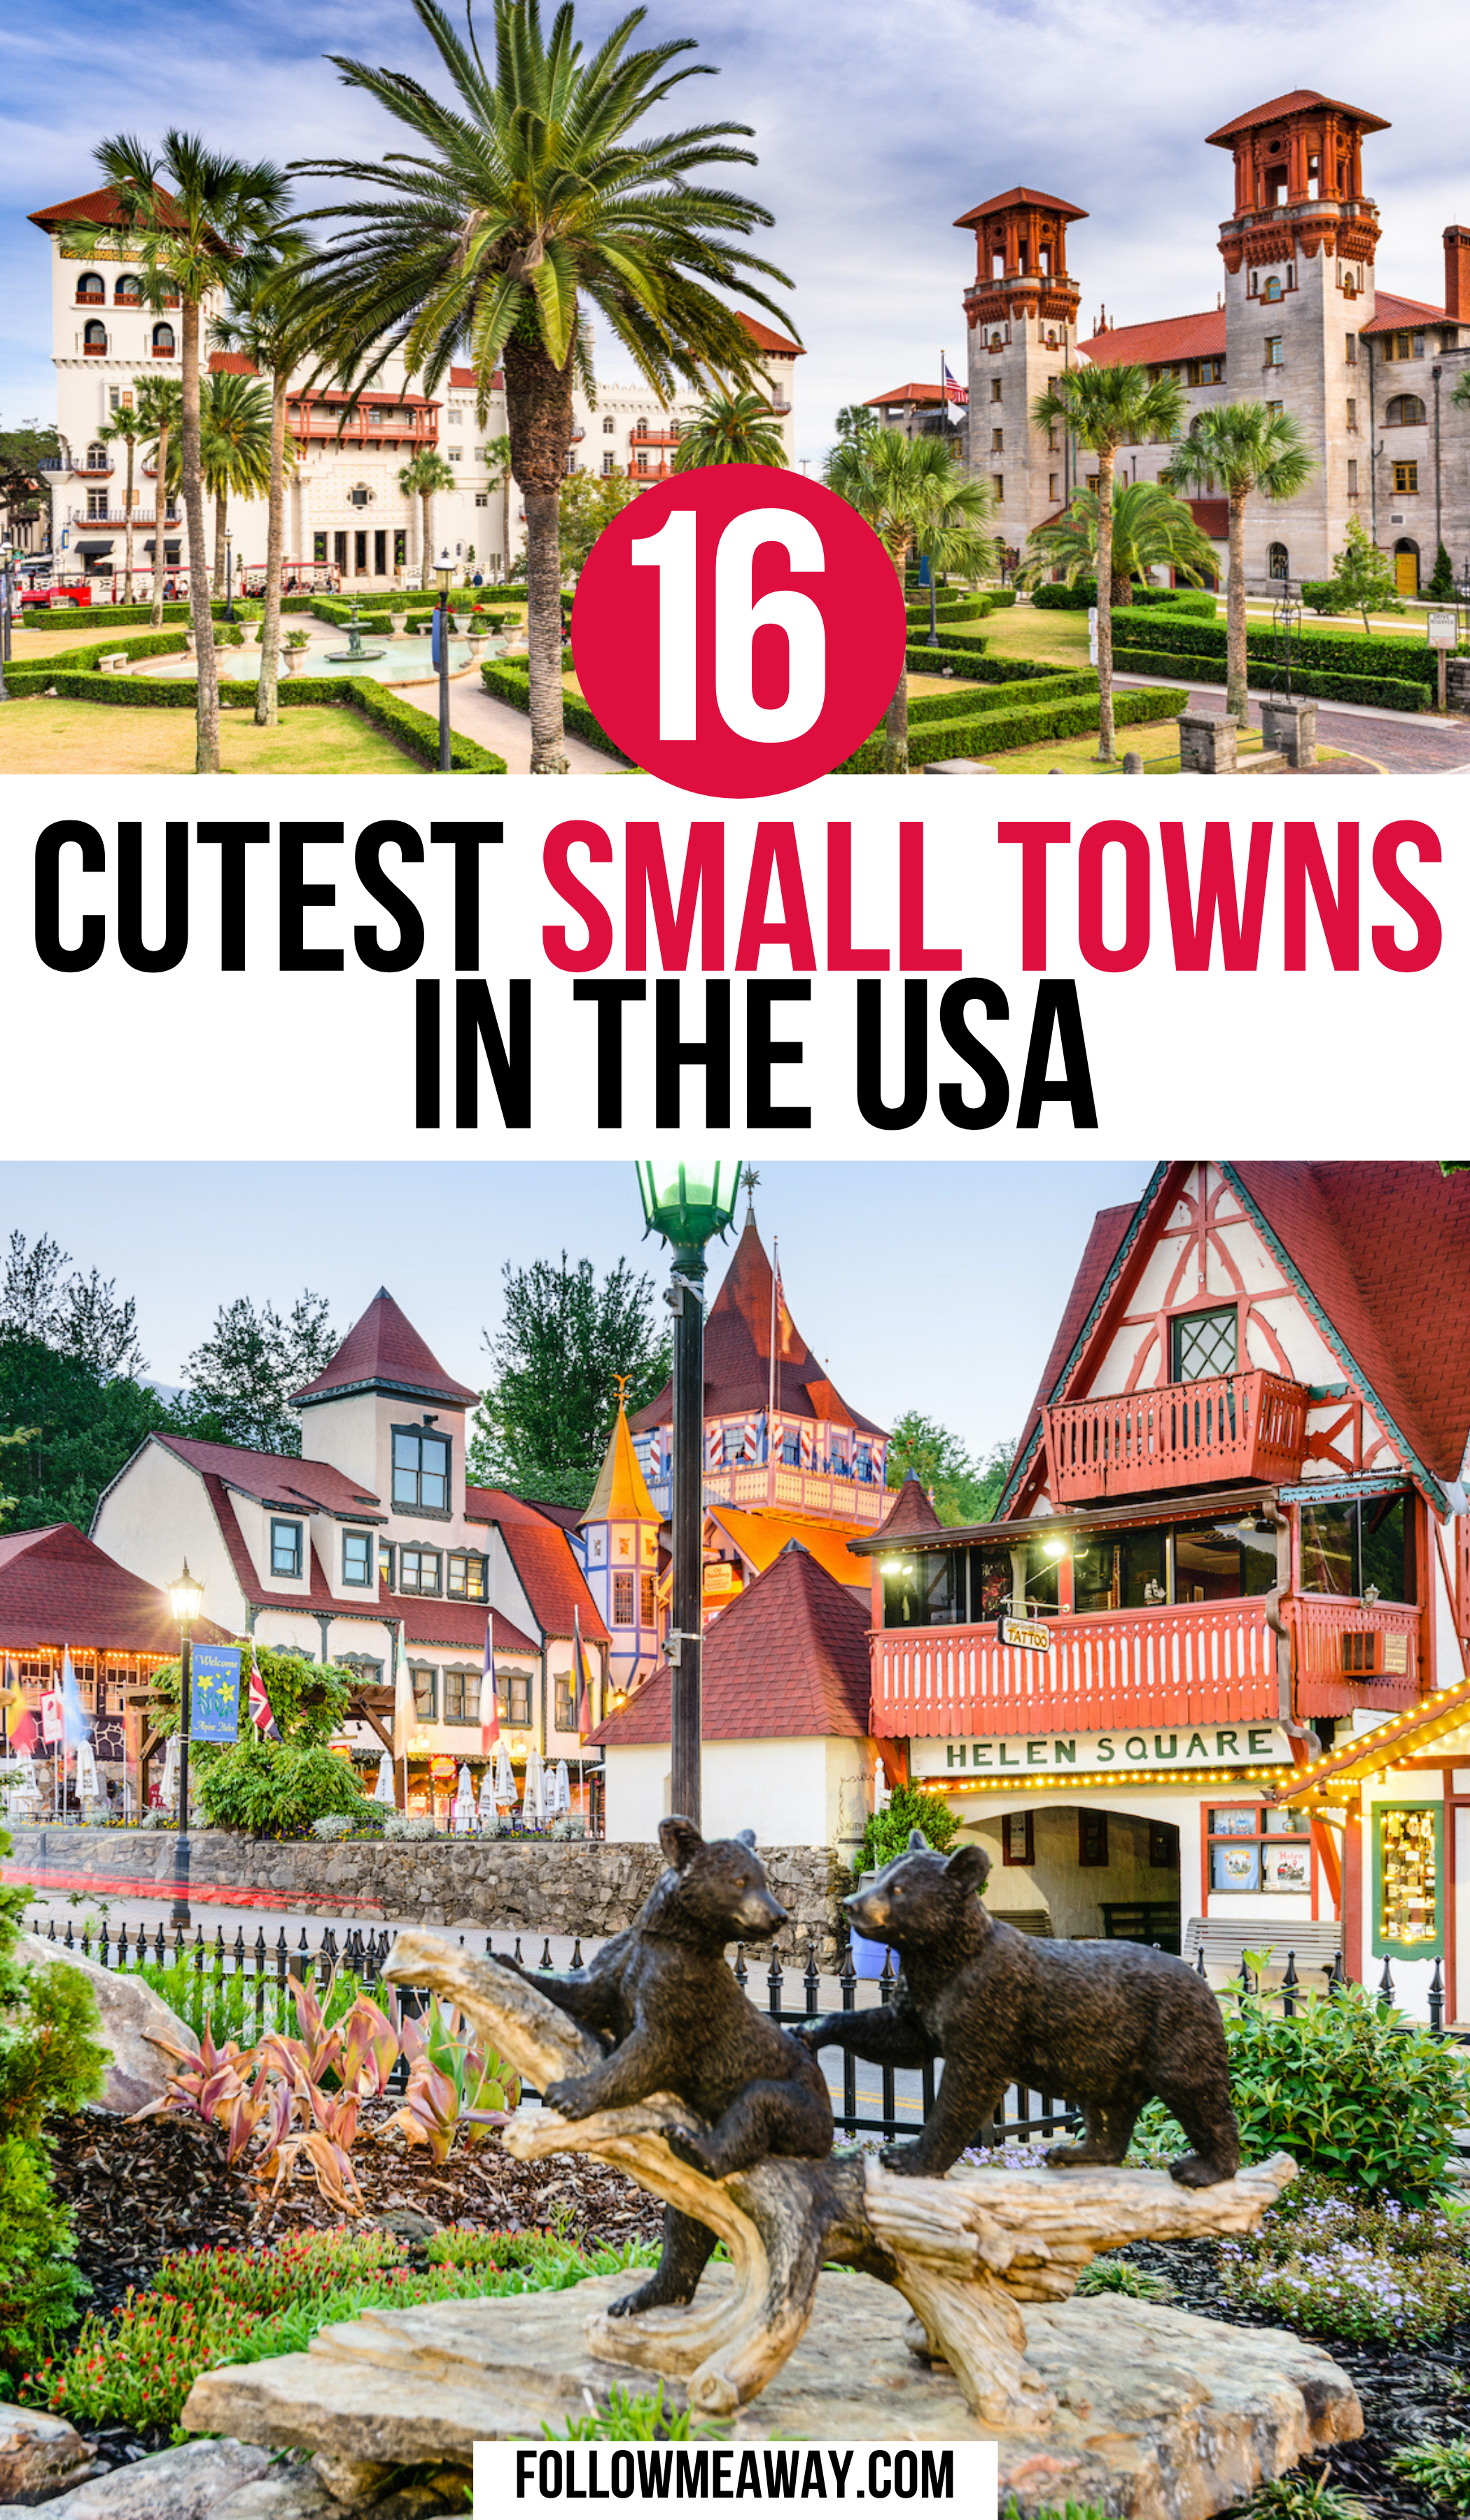 16 Cutest Small Towns In America | small towns in America | small towns usa | small town usa main street | best small towns usa | best small towns in usa | best small towns in america to visit | best small towns to visit america | cute small towns in america | charming towns in america | charming towns usa | #americatravel #smalltowns #usatravel